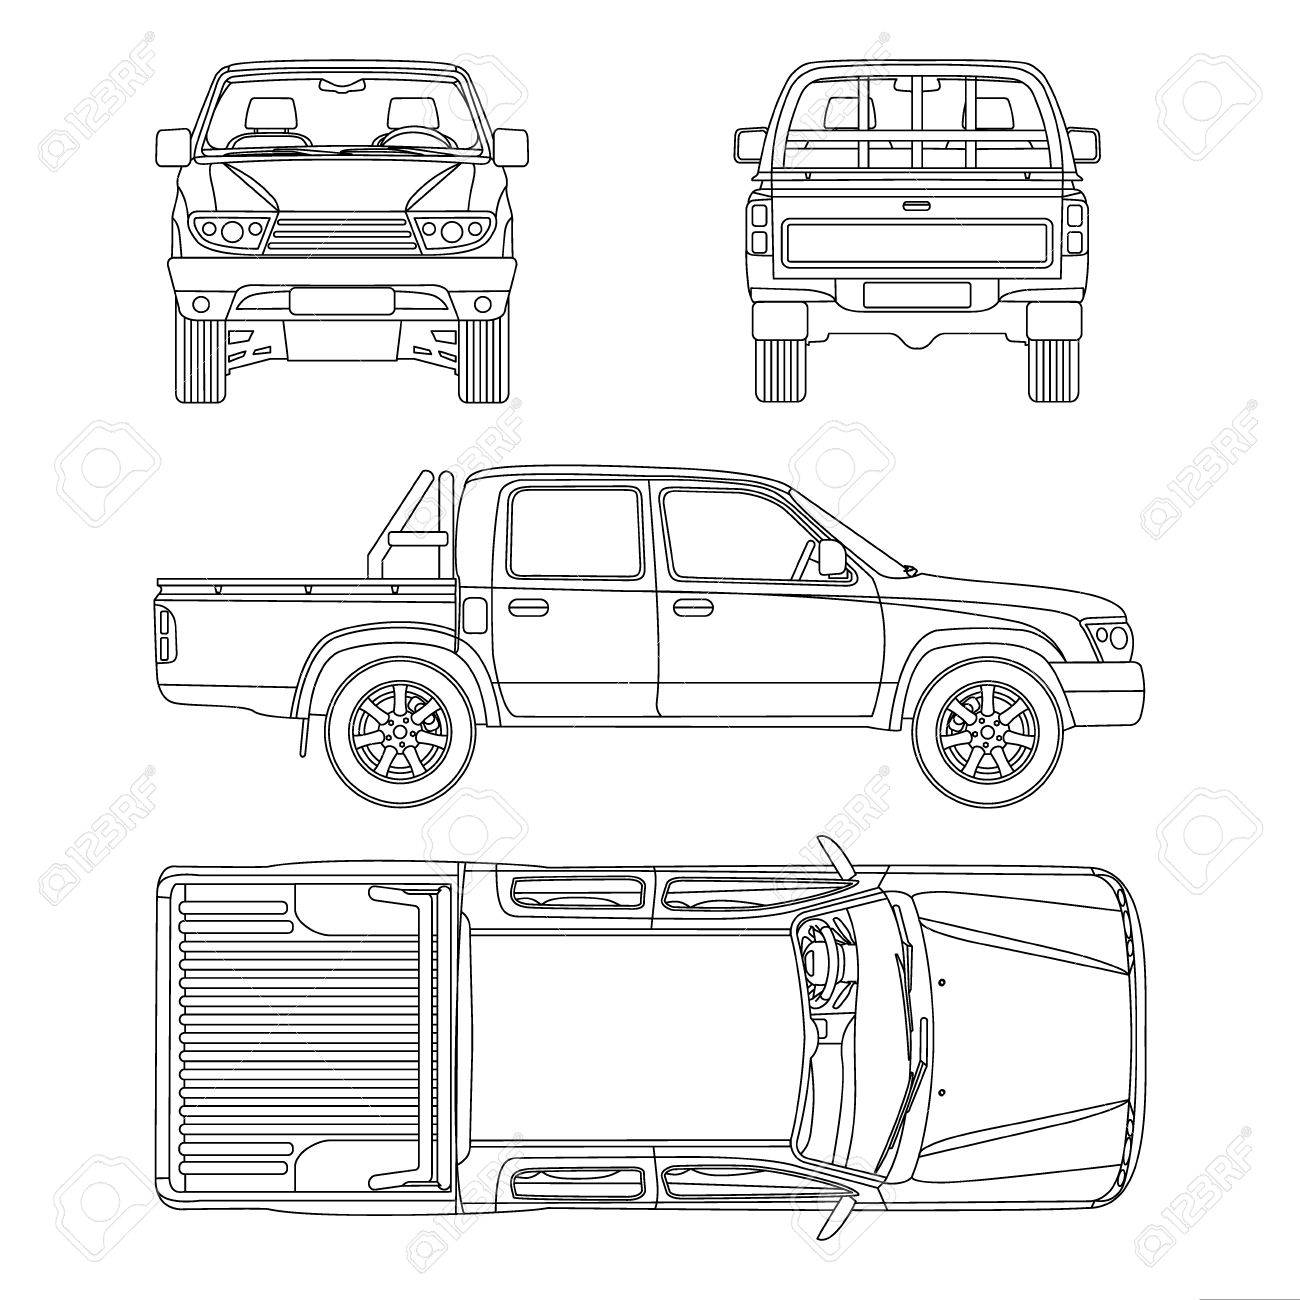 Pickup Truck Illustration Blueprint Stock Vector   55832521